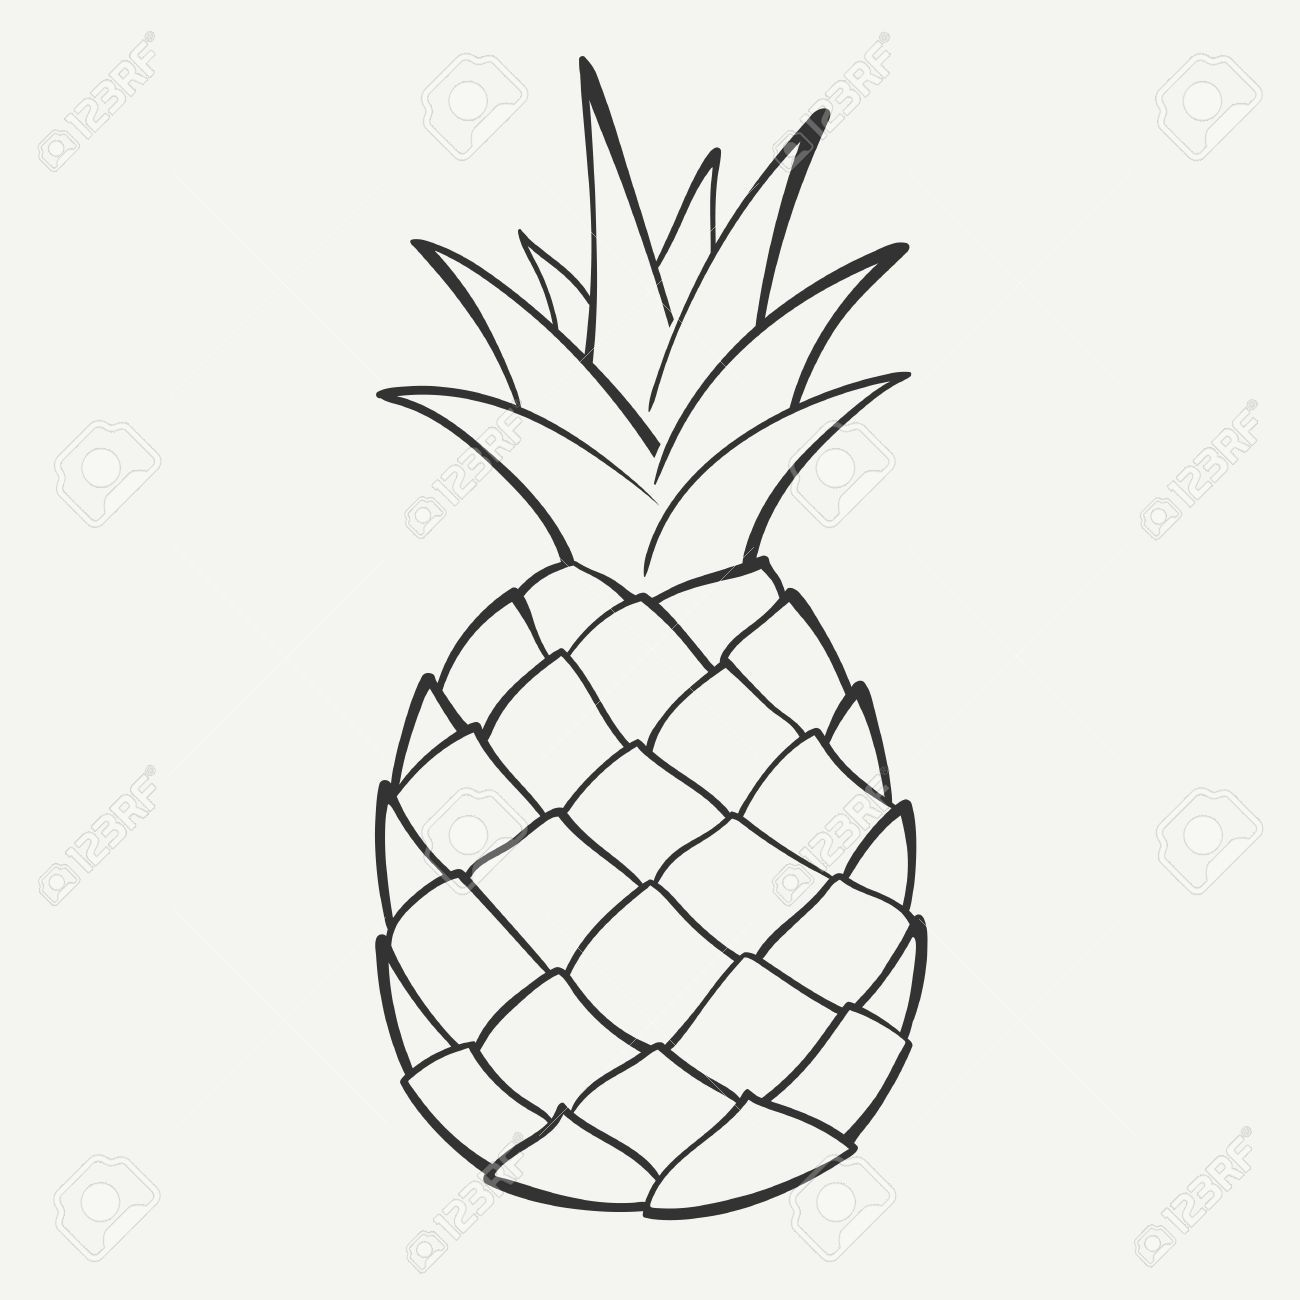 Free black and white pineapple clipart. Stock vector e s